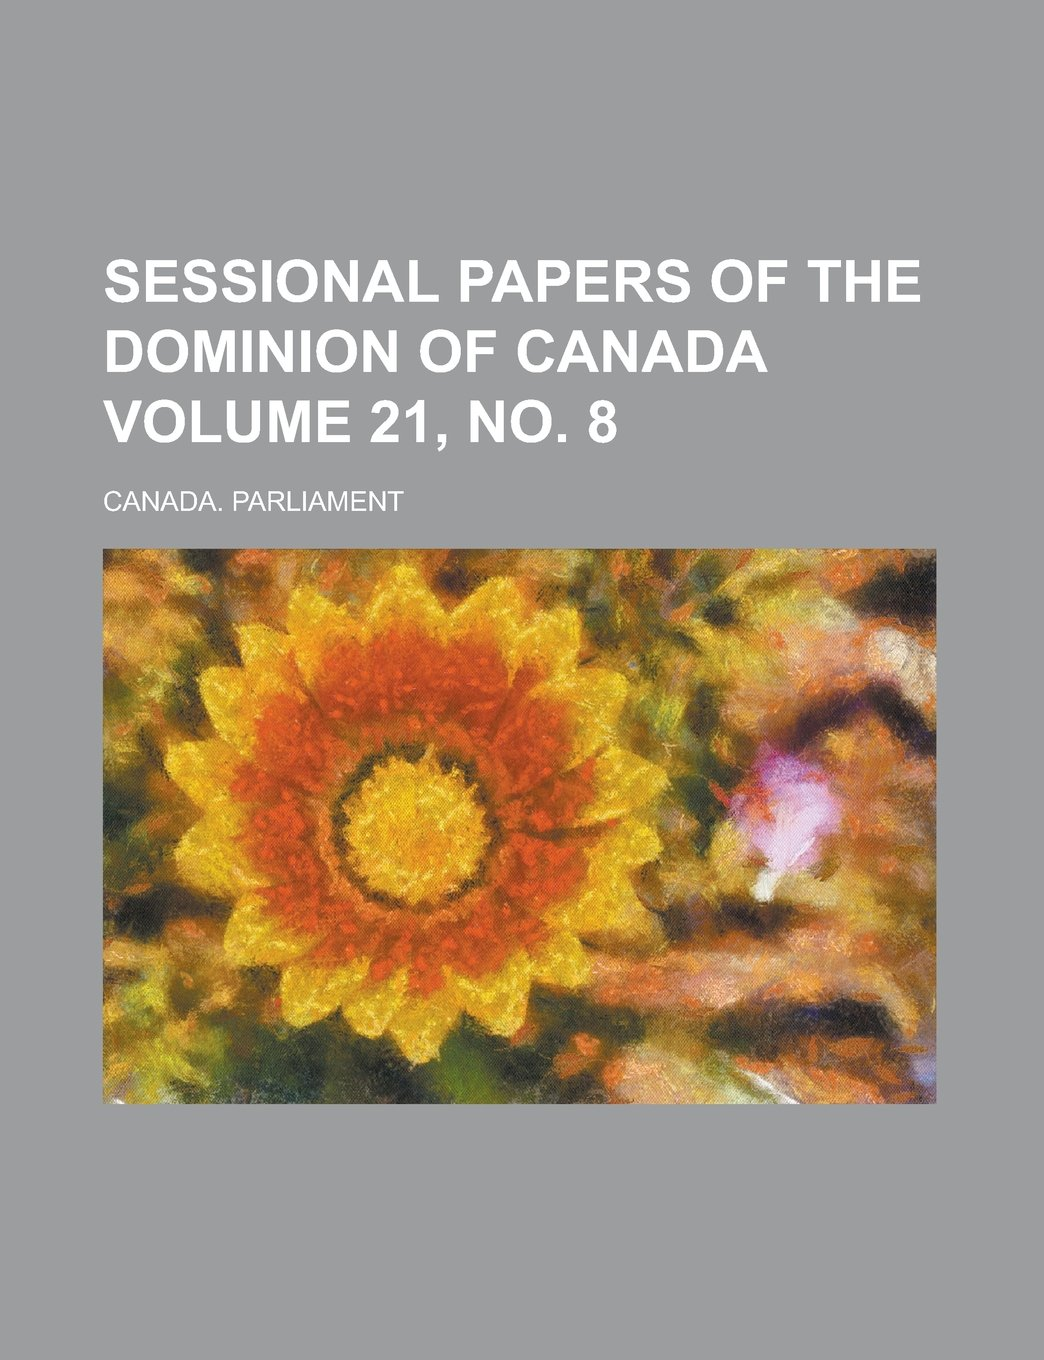 Read Online Sessional Papers of the Dominion of Canada Volume 21, no. 8 ebook